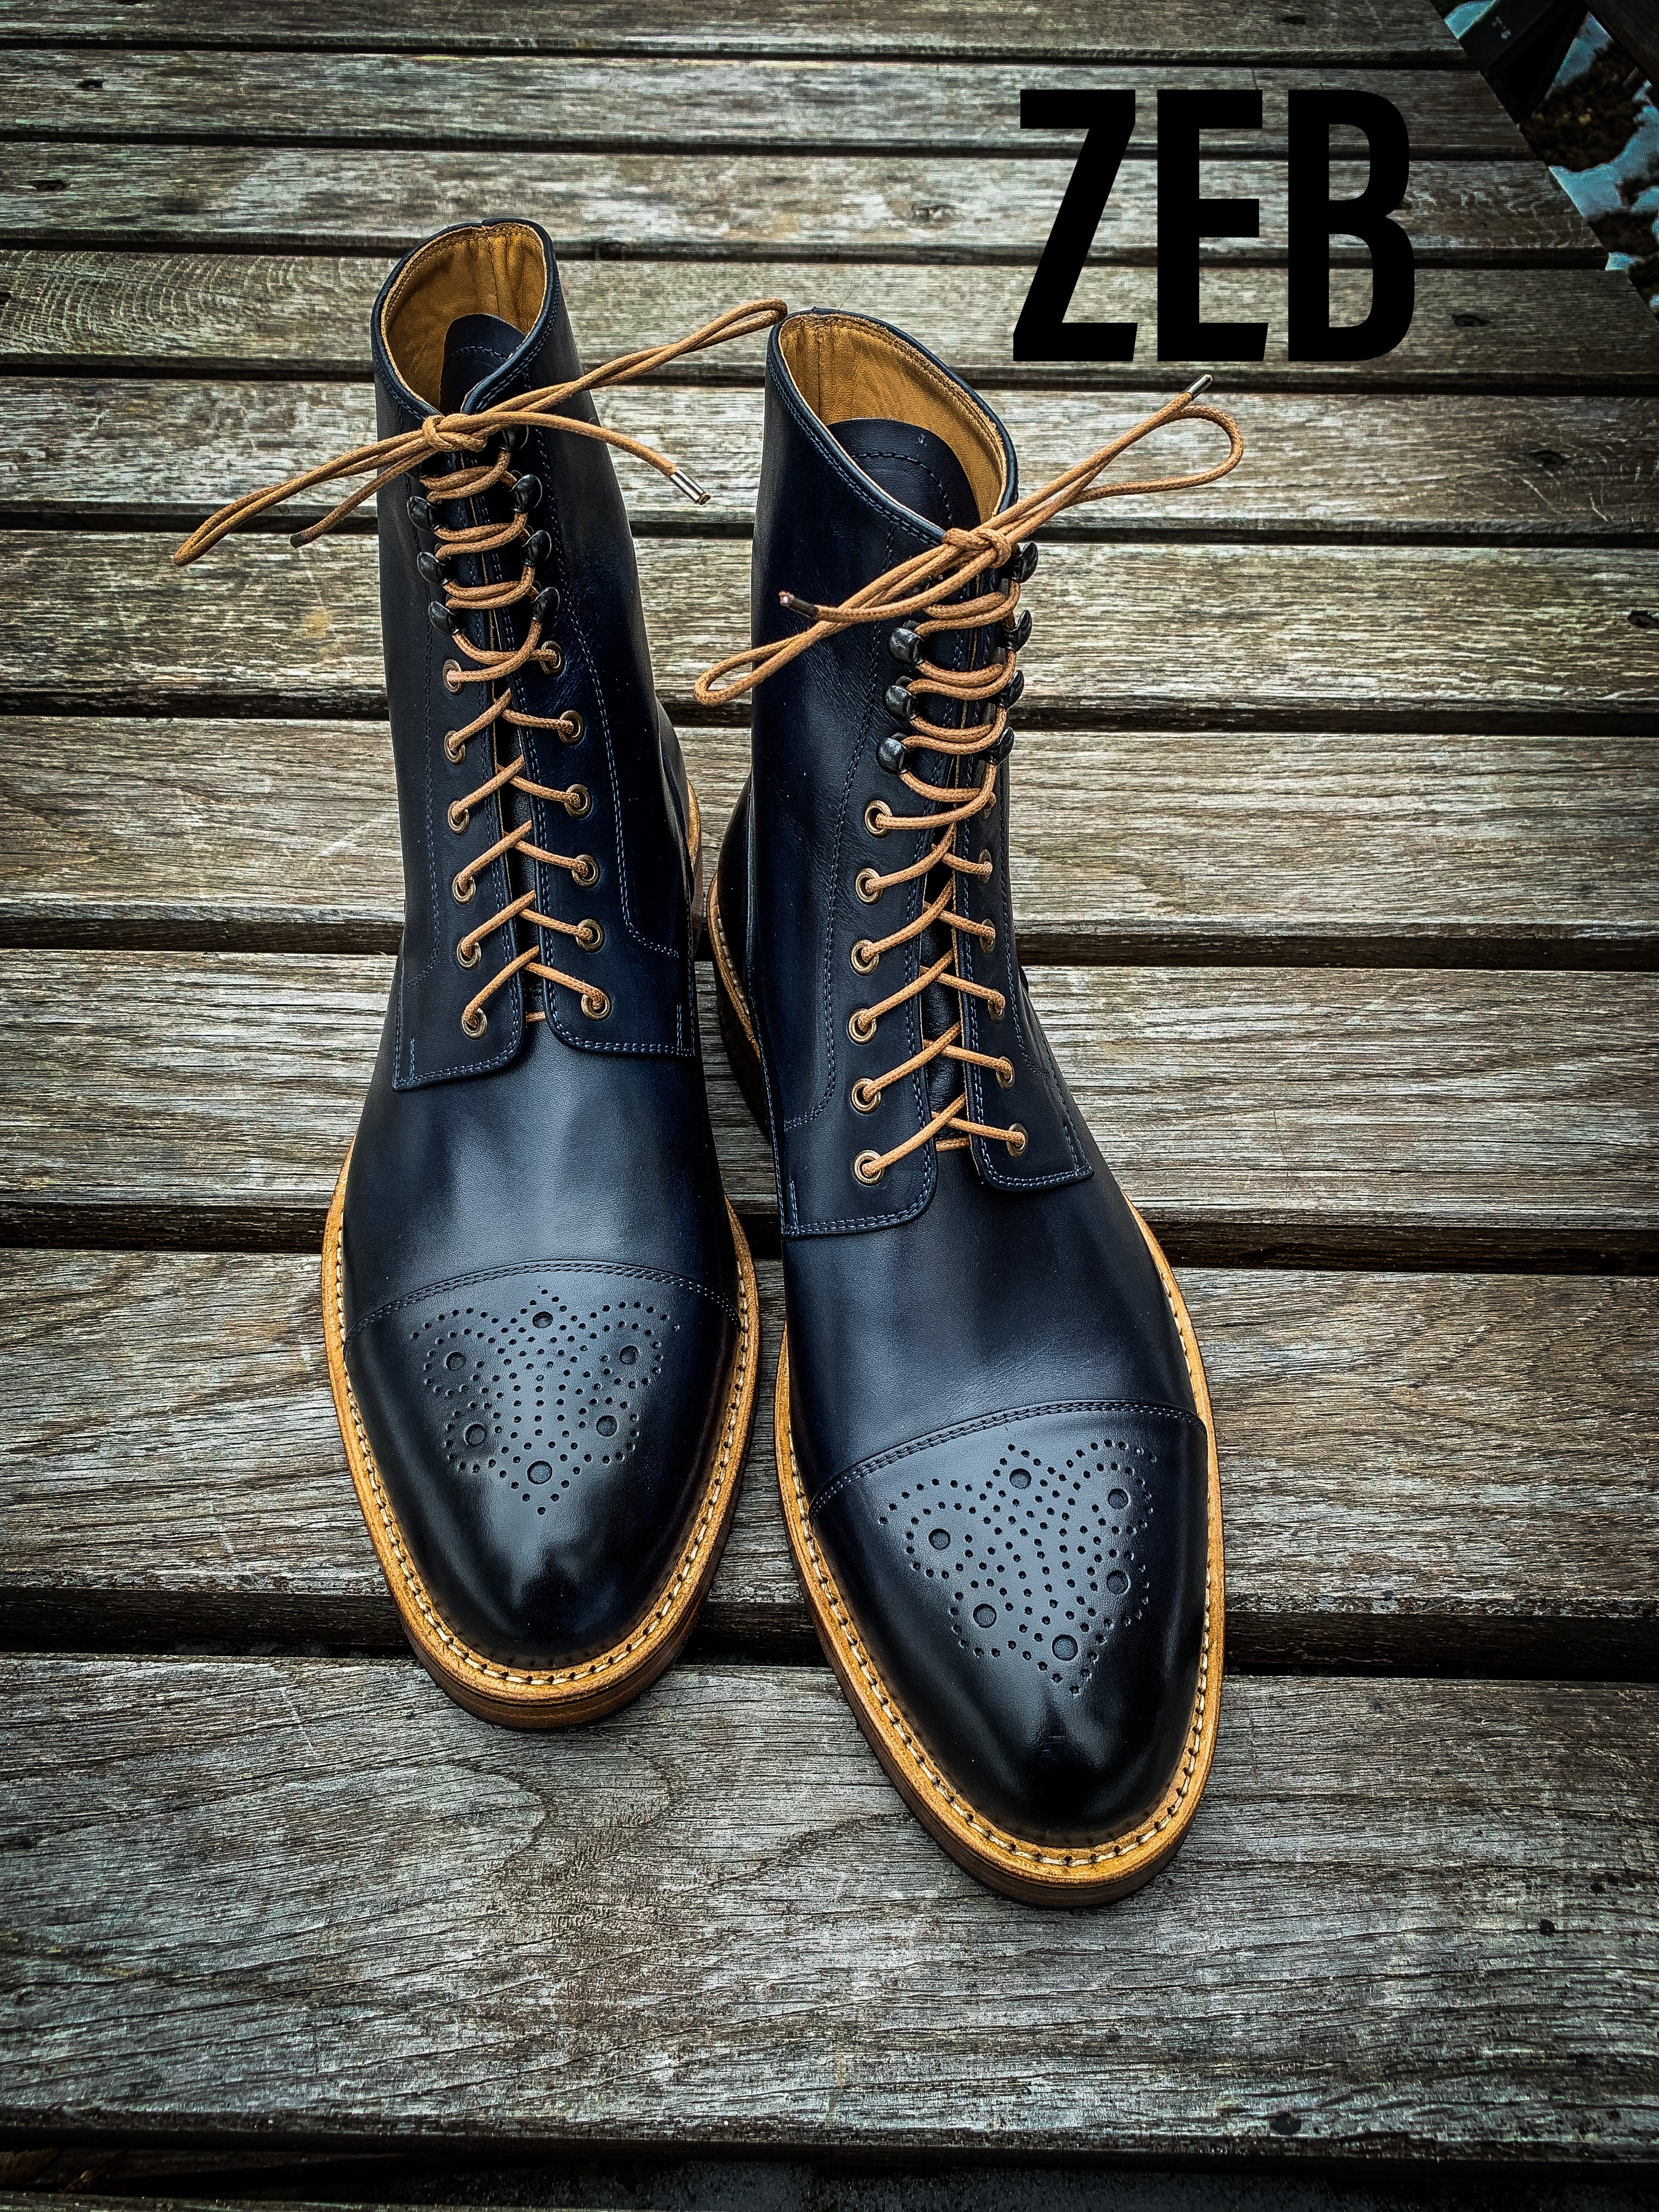 Leather-Boots-London-BLK2-Gal4